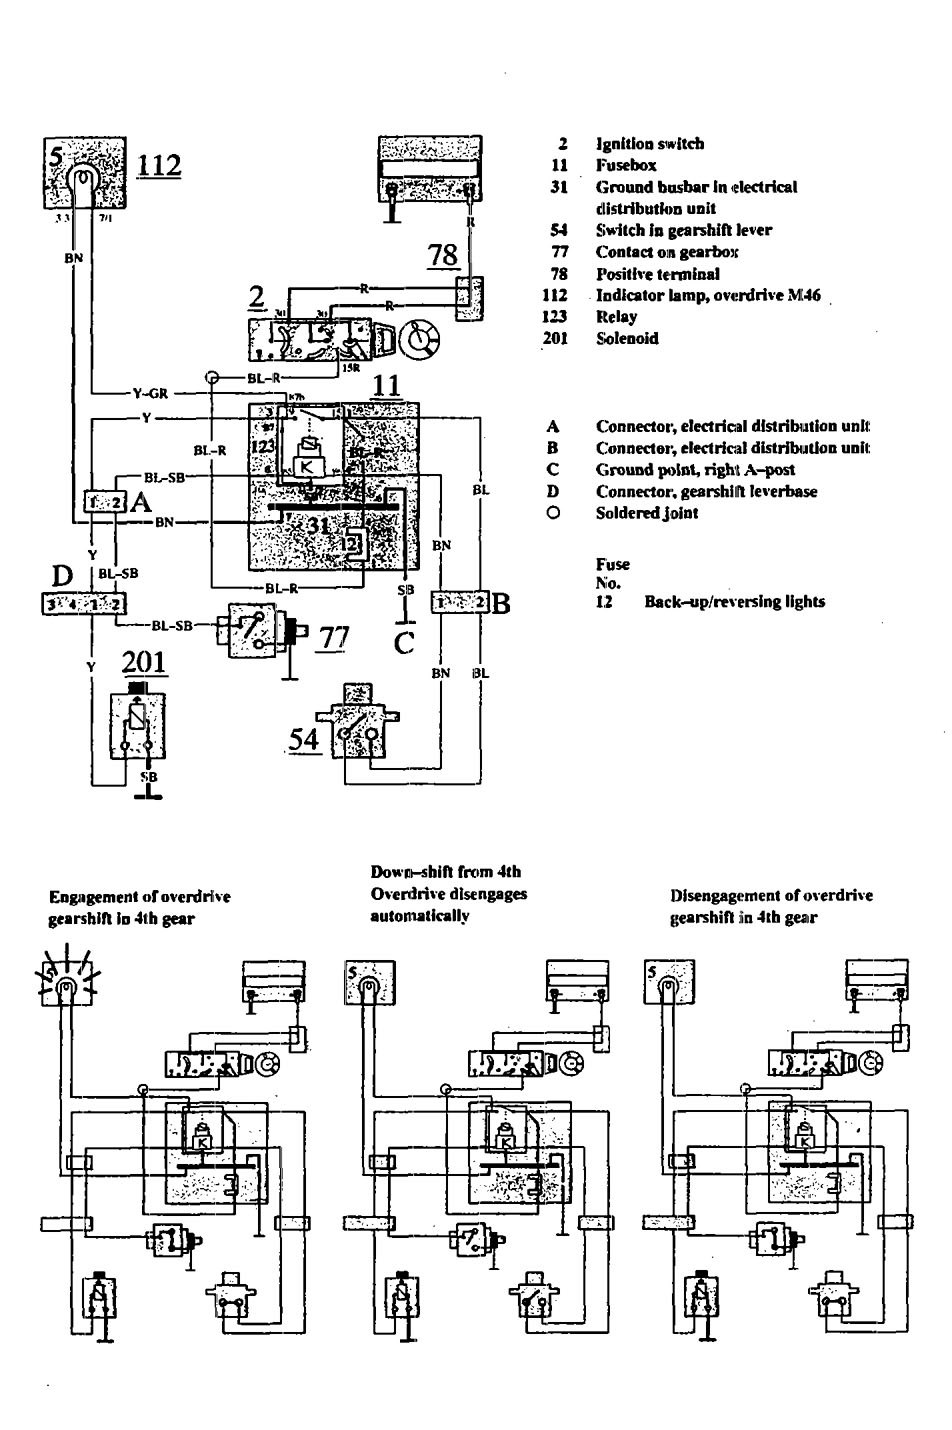 2000 volvo s70 fuse box diagram volvo wiring diagrams 940 | wiring library 98 volvo s70 fuse diagram